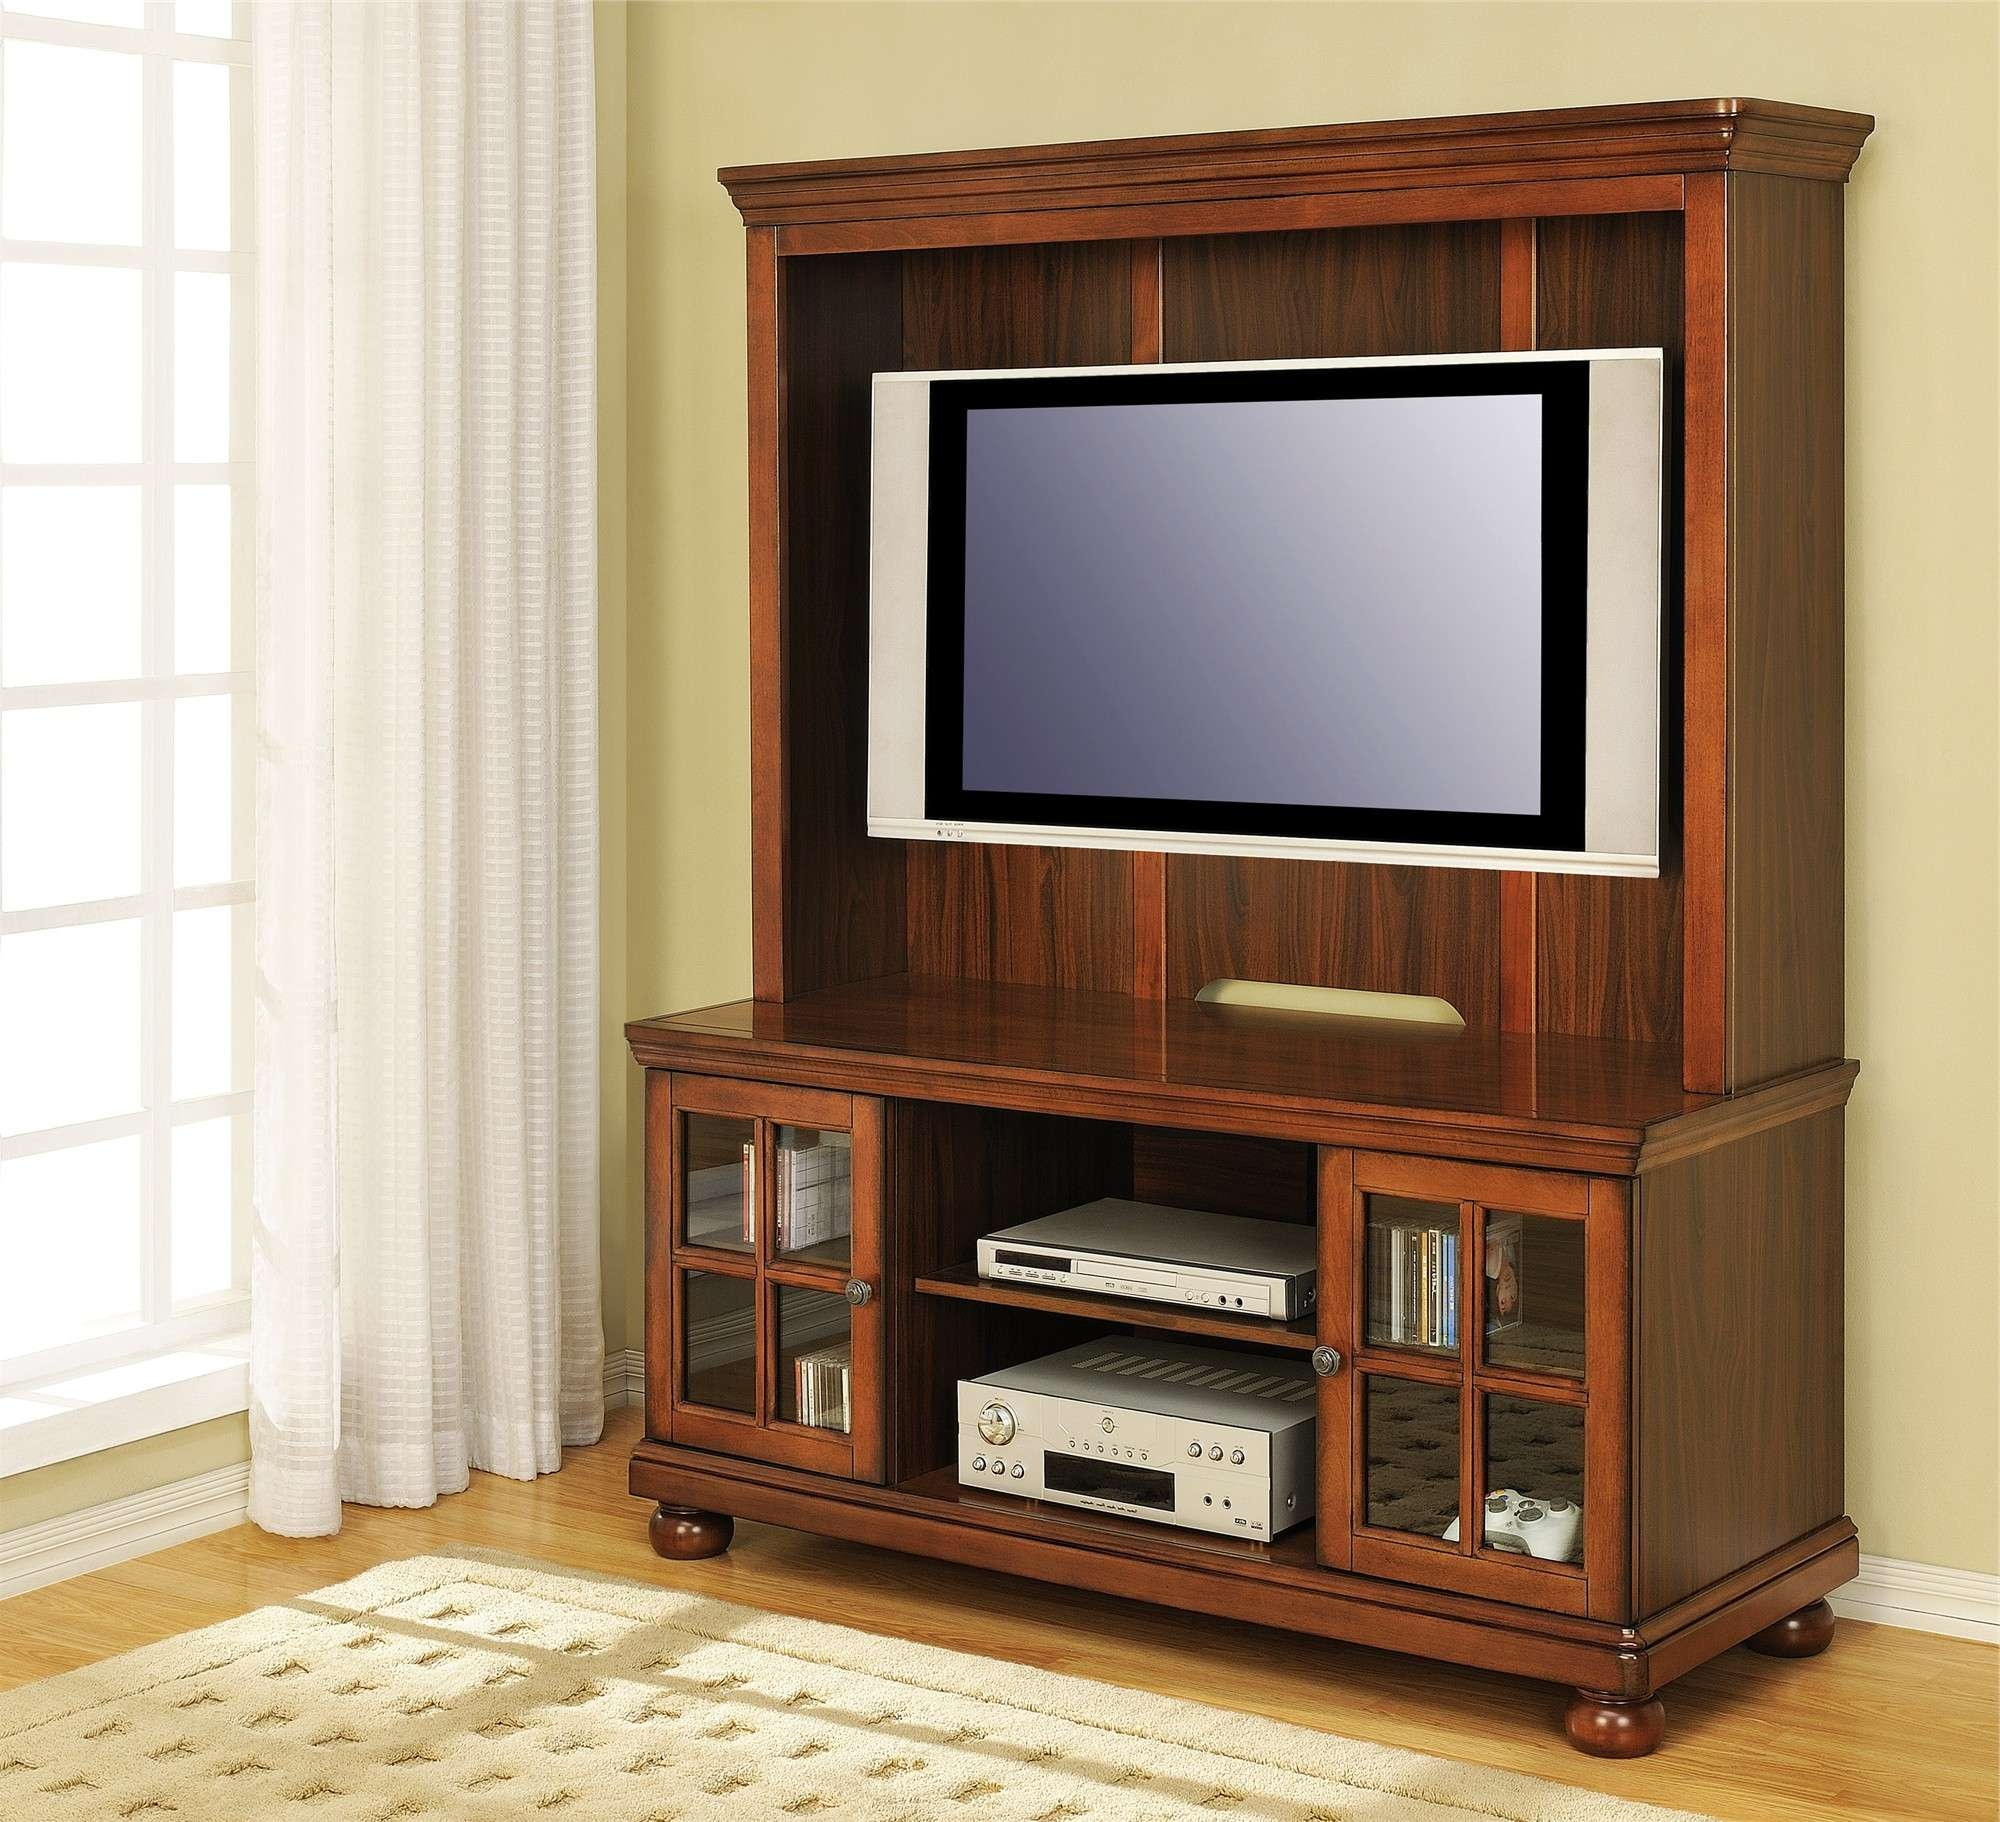 Modern Brown Oak Wood Media Cabinet With Mounted Tv Storage With Regard To Tv Cabinets (View 12 of 20)